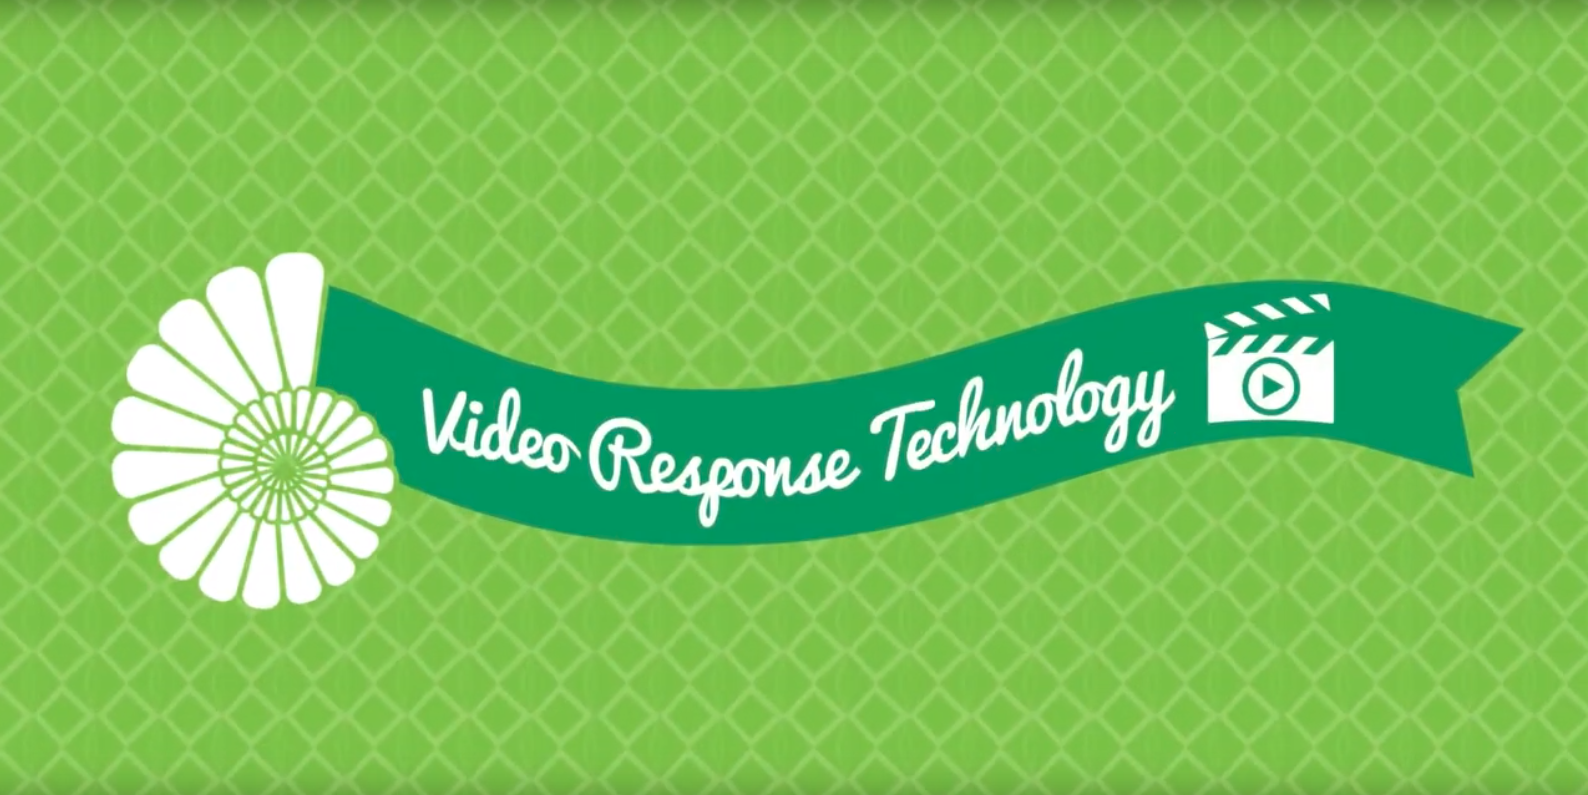 video response technology